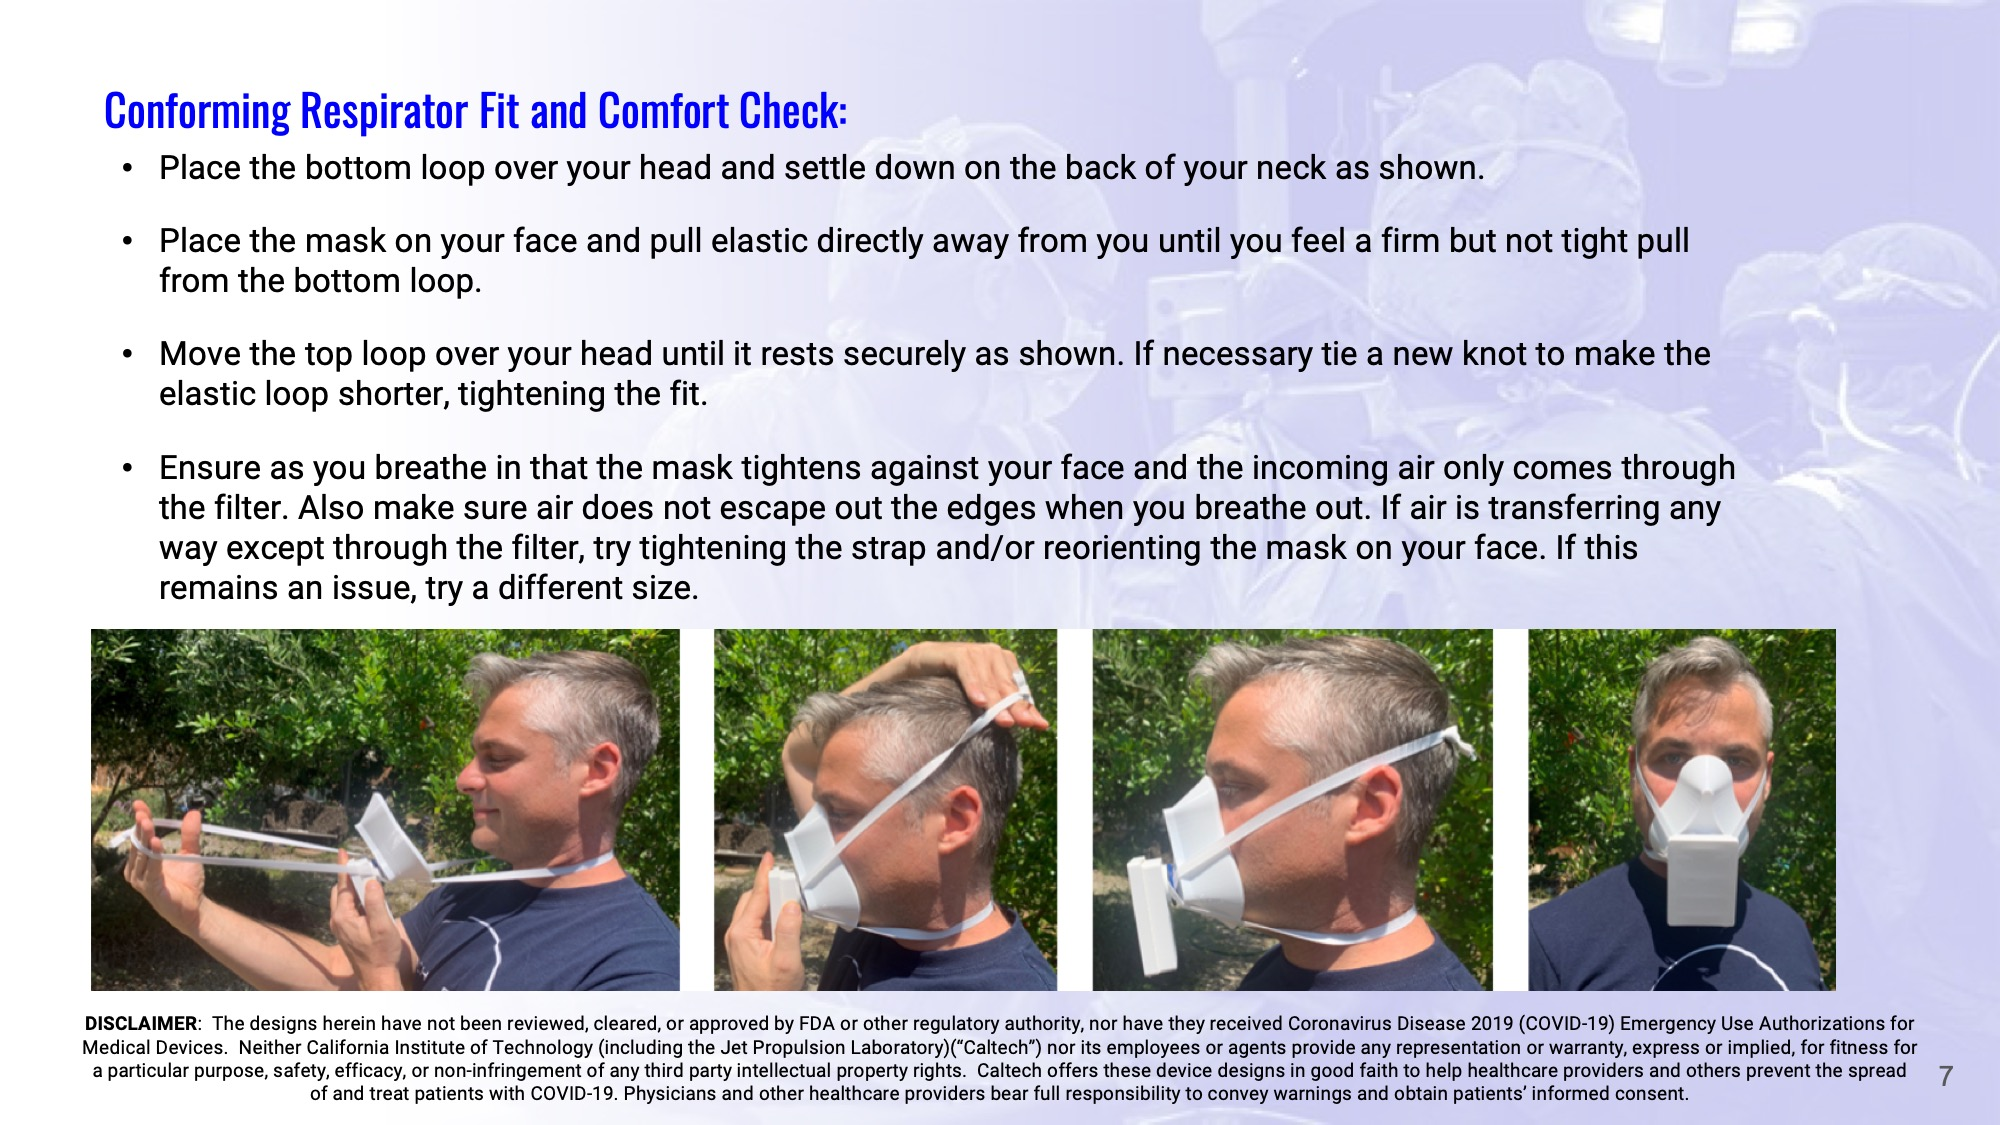 Slide 7: Conforming Respirator Fit and Comfort Check: Place the bottom loop over your head and settle down on the back of your neck as shown.  Place the mask on your face and pull elastic directly away from you until you feel a firm but not tight pull from the bottom loop.  Move the top loop over your head until it rests securely as shown. If necessary tie a new knot to make the elastic loop shorter, tightening the fit.  Ensure as you breathe in that the mask tightens against your face and the incoming air only comes through the filter. Also make sure air does not escape out the edges when you breathe out. If air is transferring any way except through the filter, try tightening the strap and/or reorienting the mask on your face. If this remains an issue, try a different size.